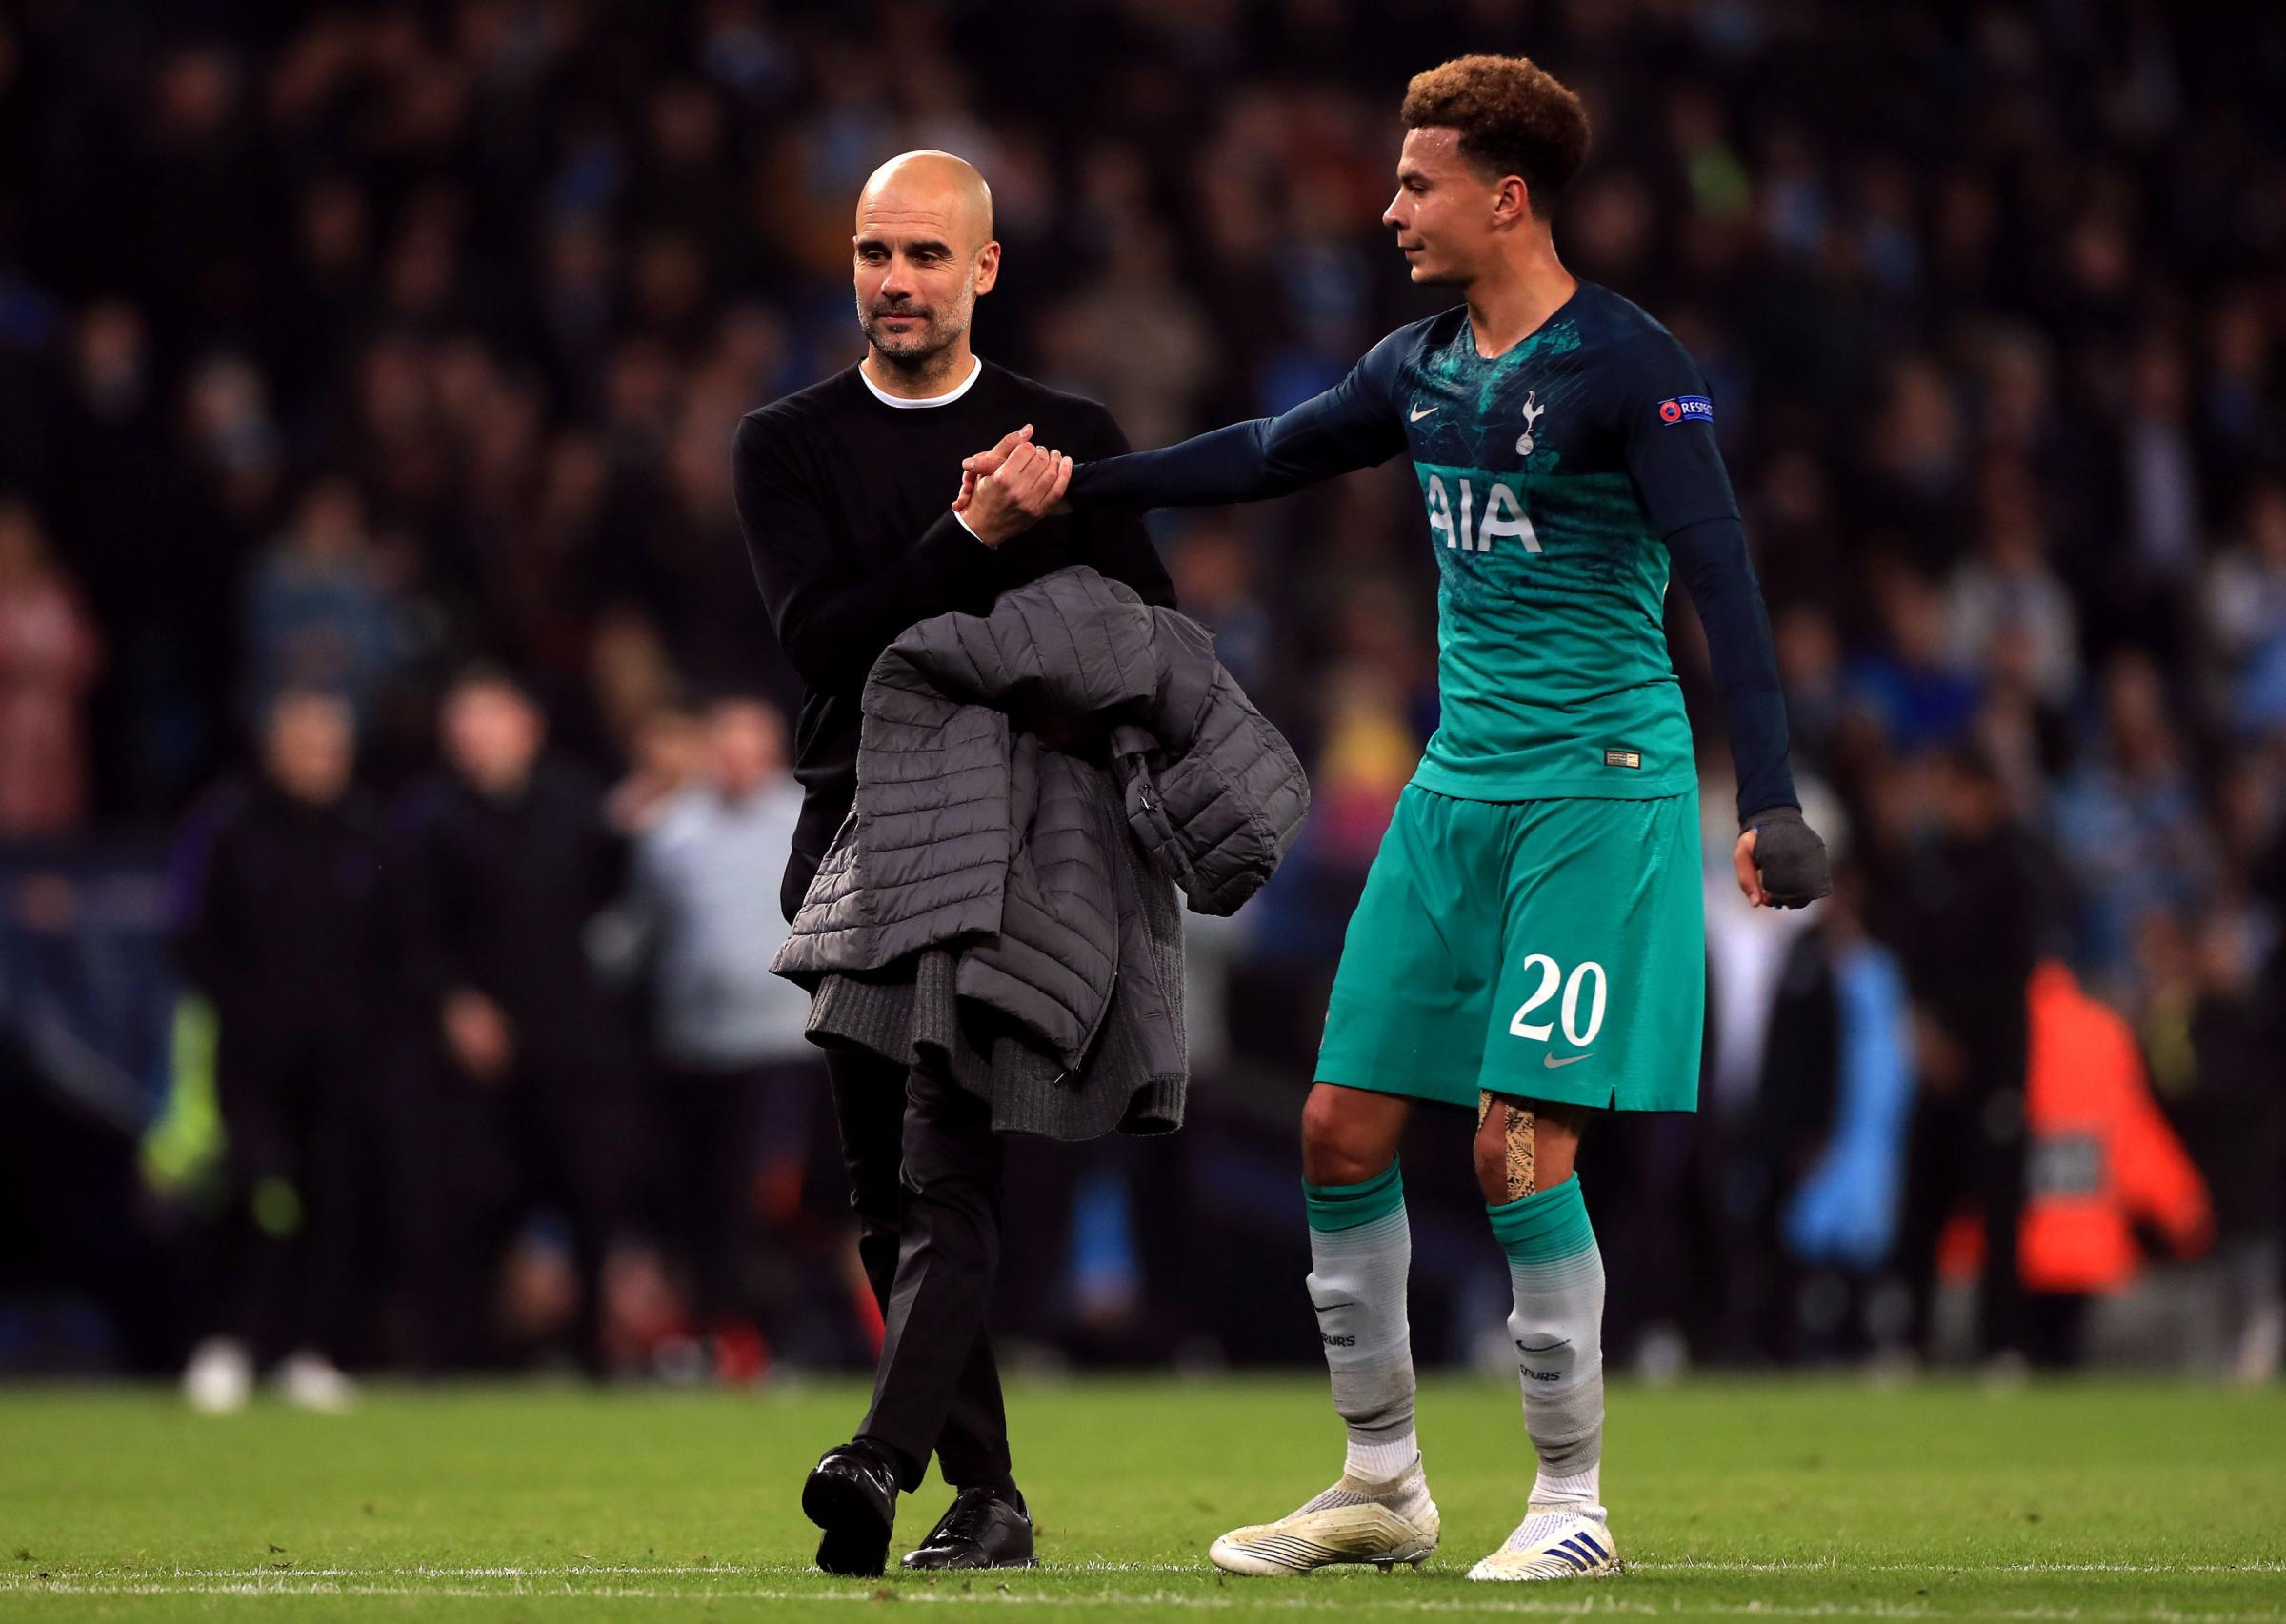 Manchester City manager Pep Guardiola and Tottenham Hotspur's Dele Alli after the UEFA Champions League quarter final second leg match at the Etihad Stadium, Manchester